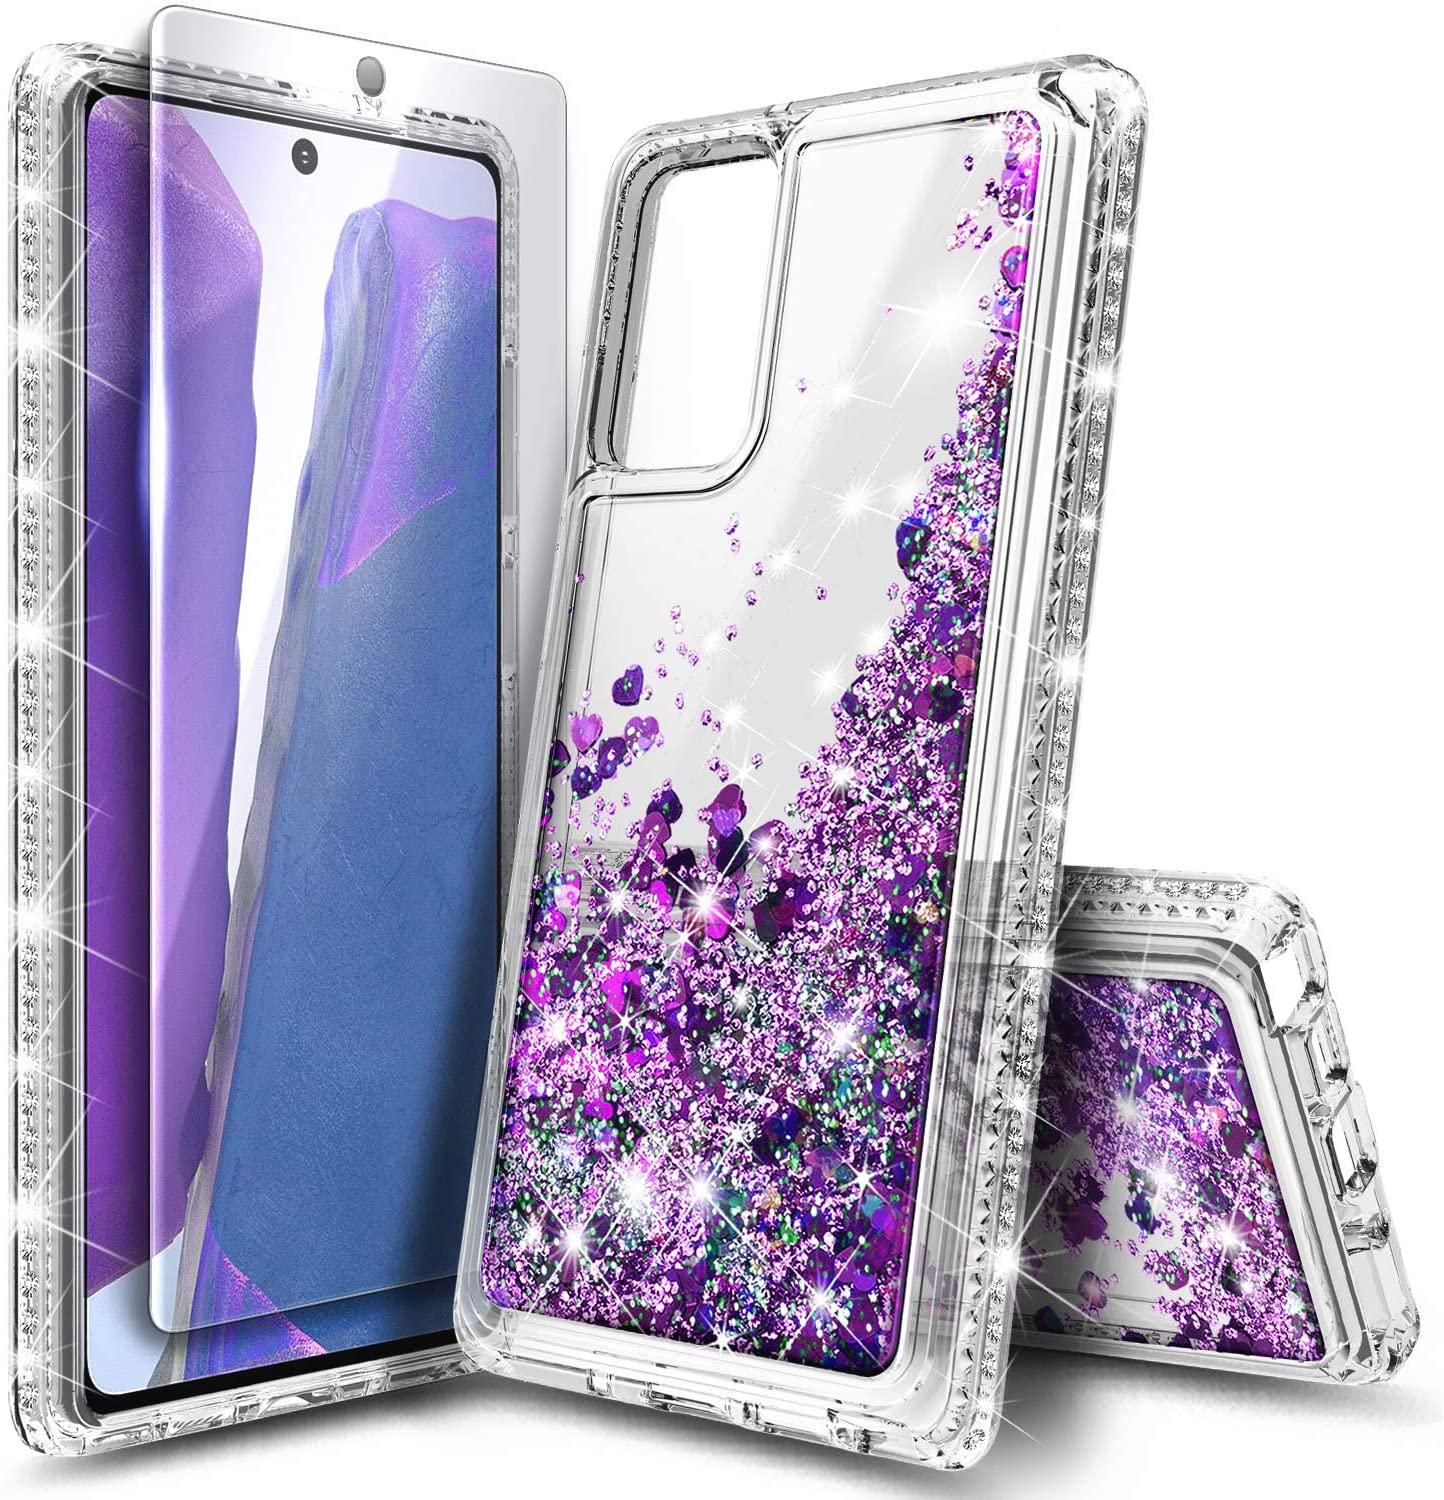 E-Began Case for Samsung Galaxy Note 20 with Tempered Glass Screen Protector, Sparkle Glitter Flowing Liquid Floating Quicksand w/Shiny Bling Diamond, Durable Girls Cute Phone Case (Purple)